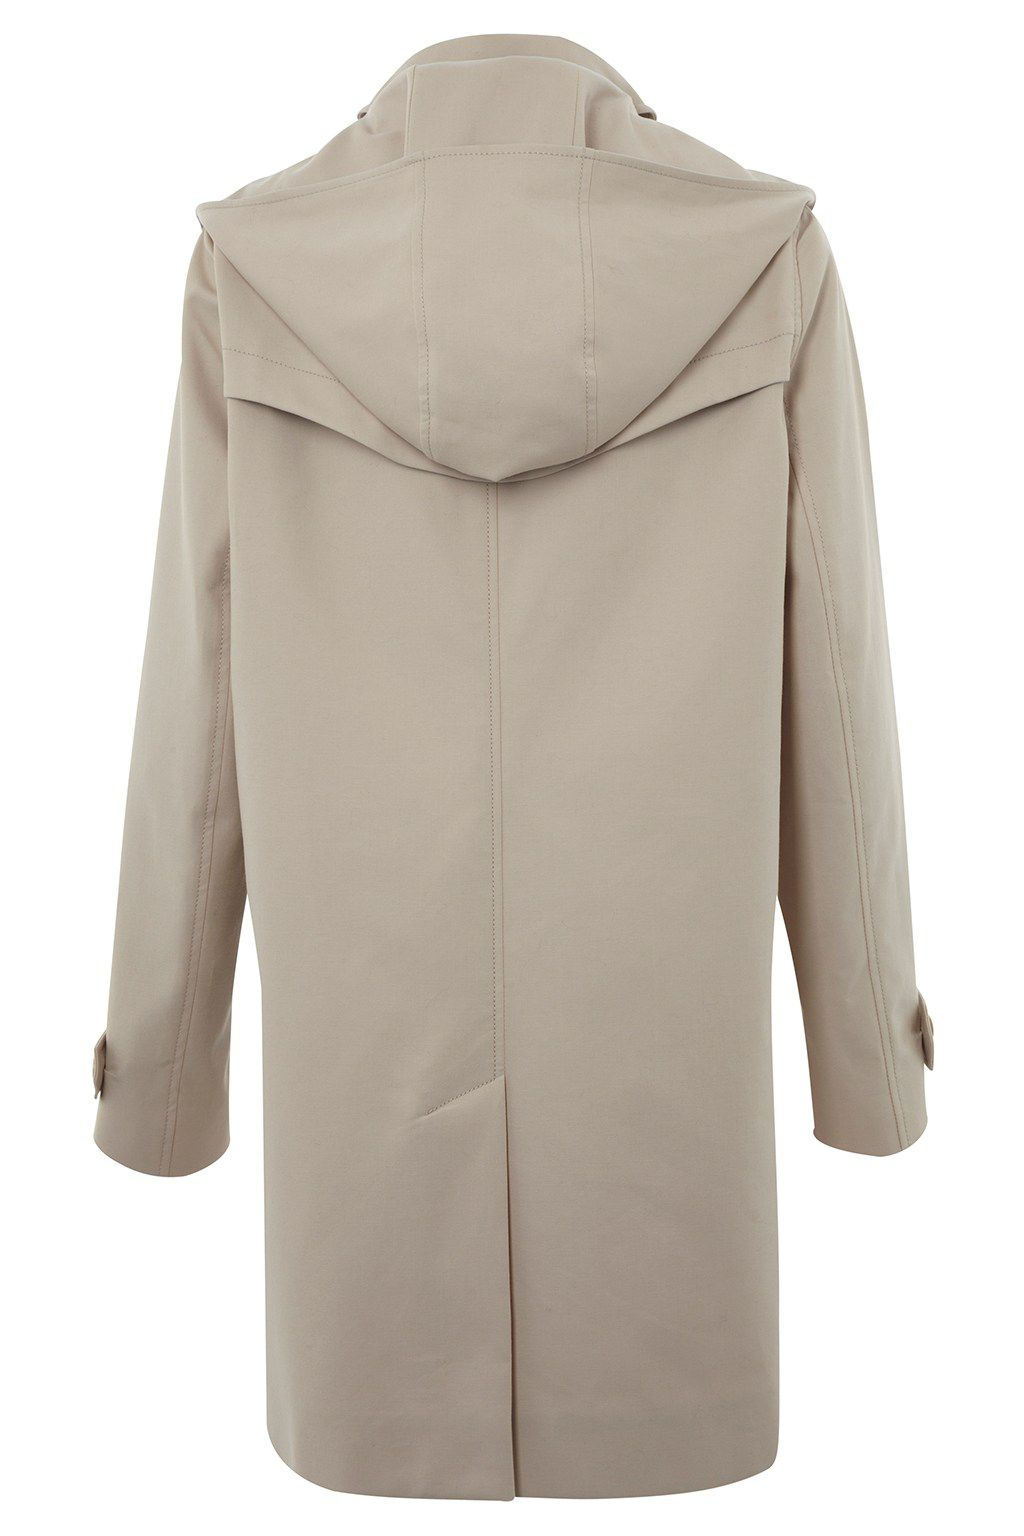 Smart catch trench coat